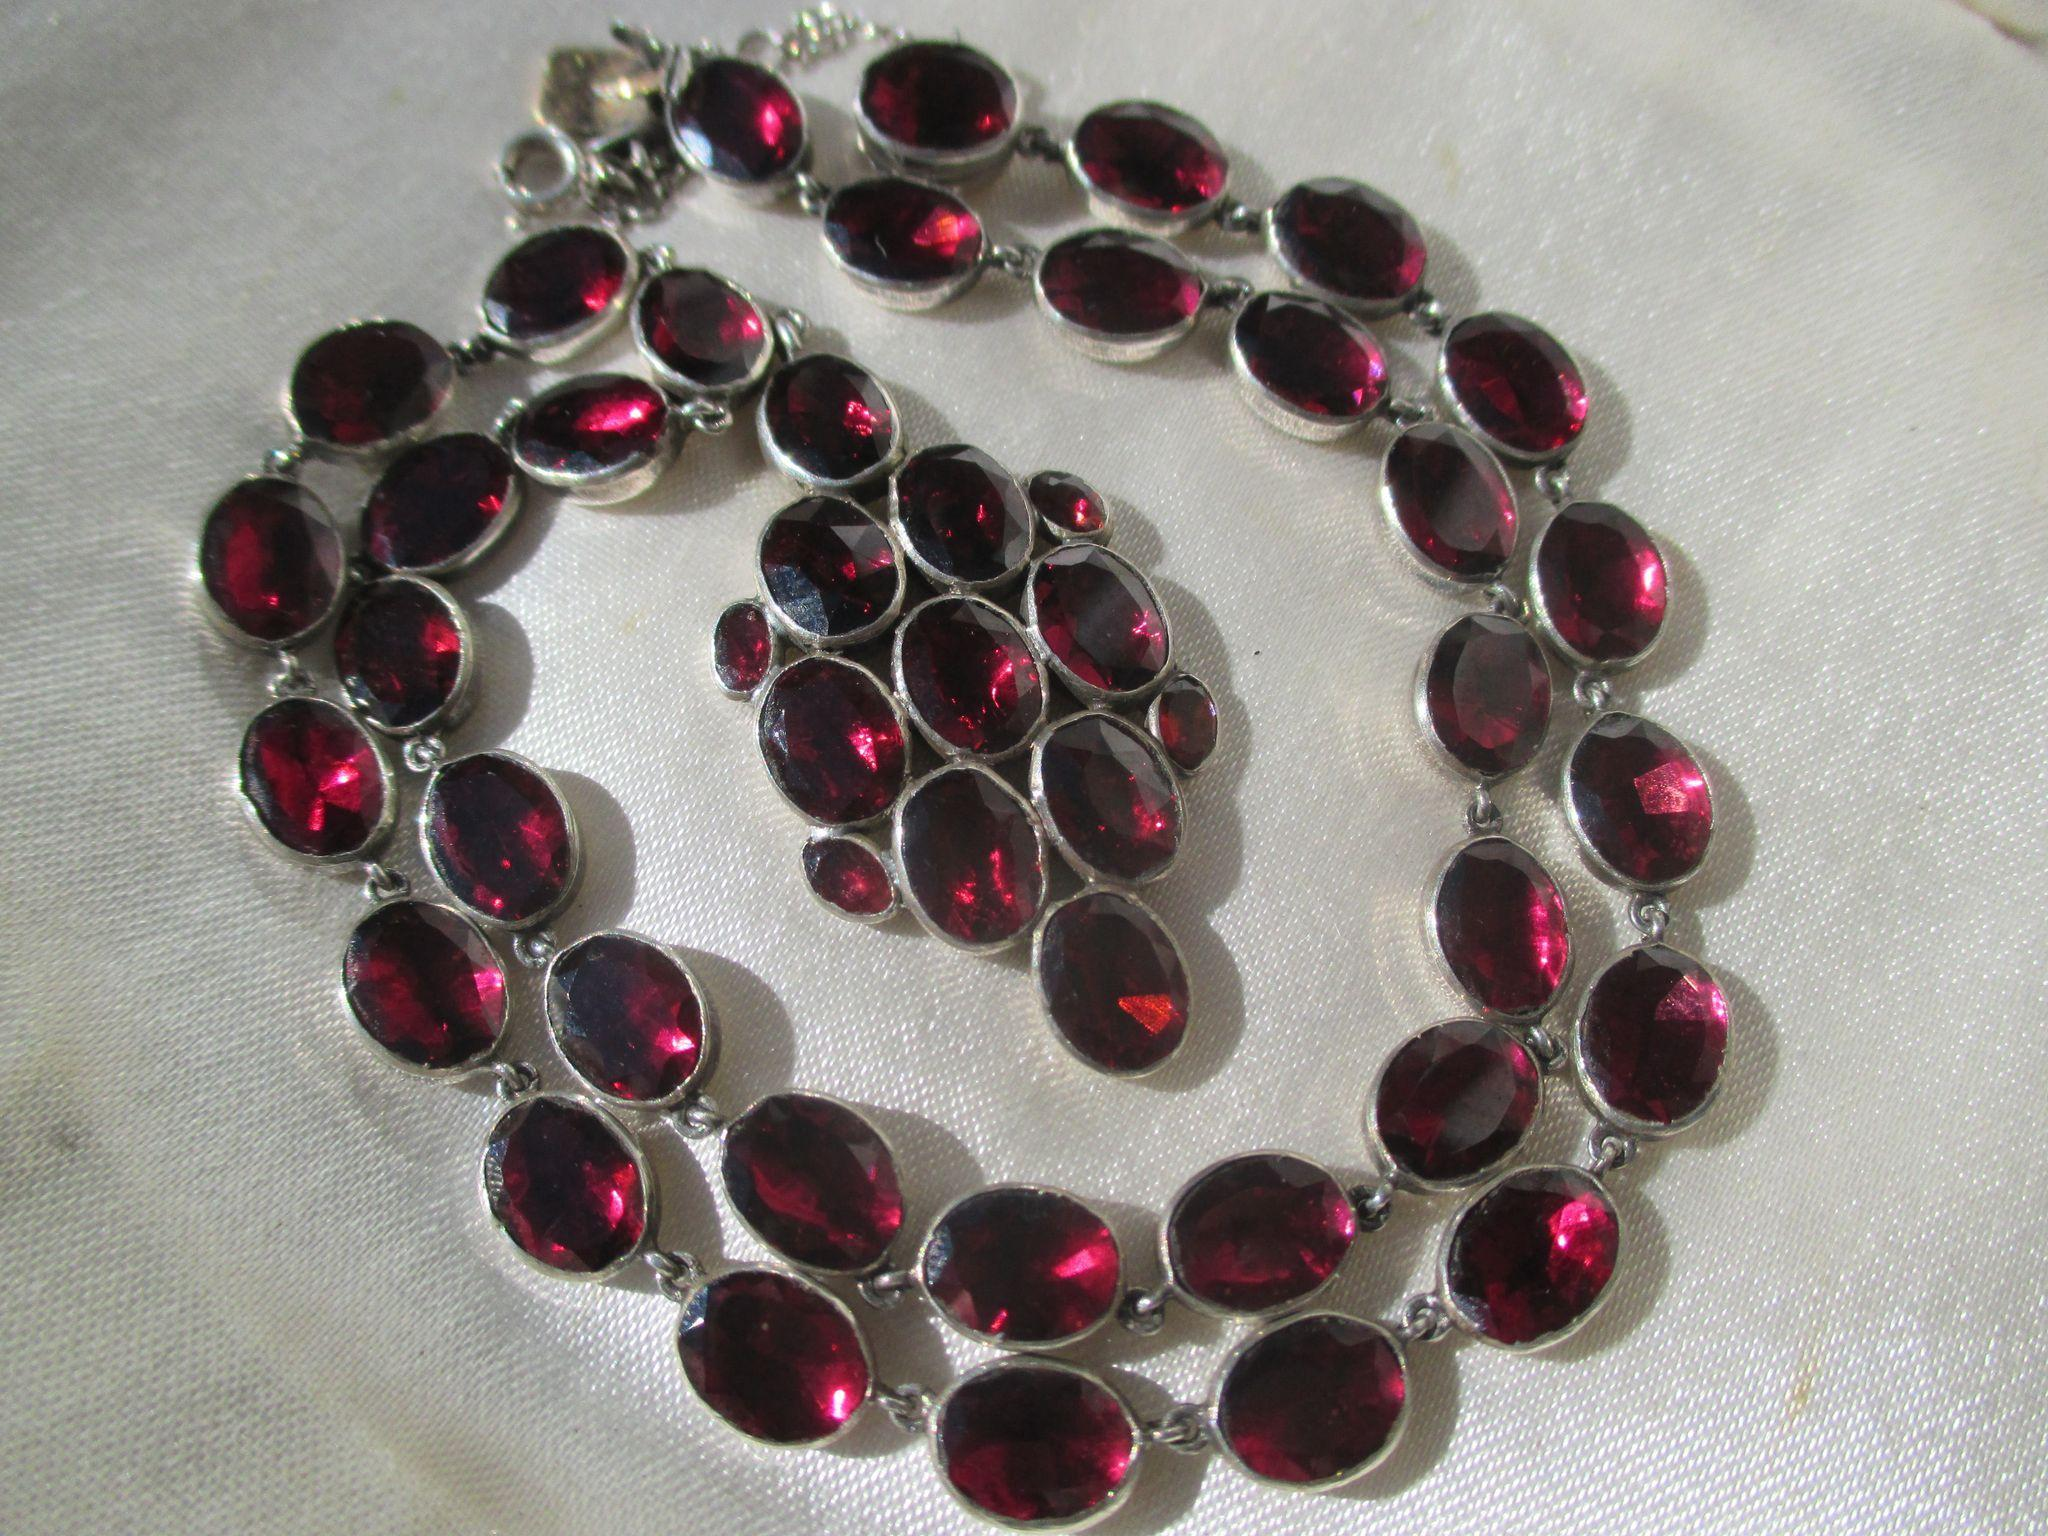 Shop Special! Antique Georgian Riviere Natural Garnet Necklace ~ Pendant ~ Georgian Era